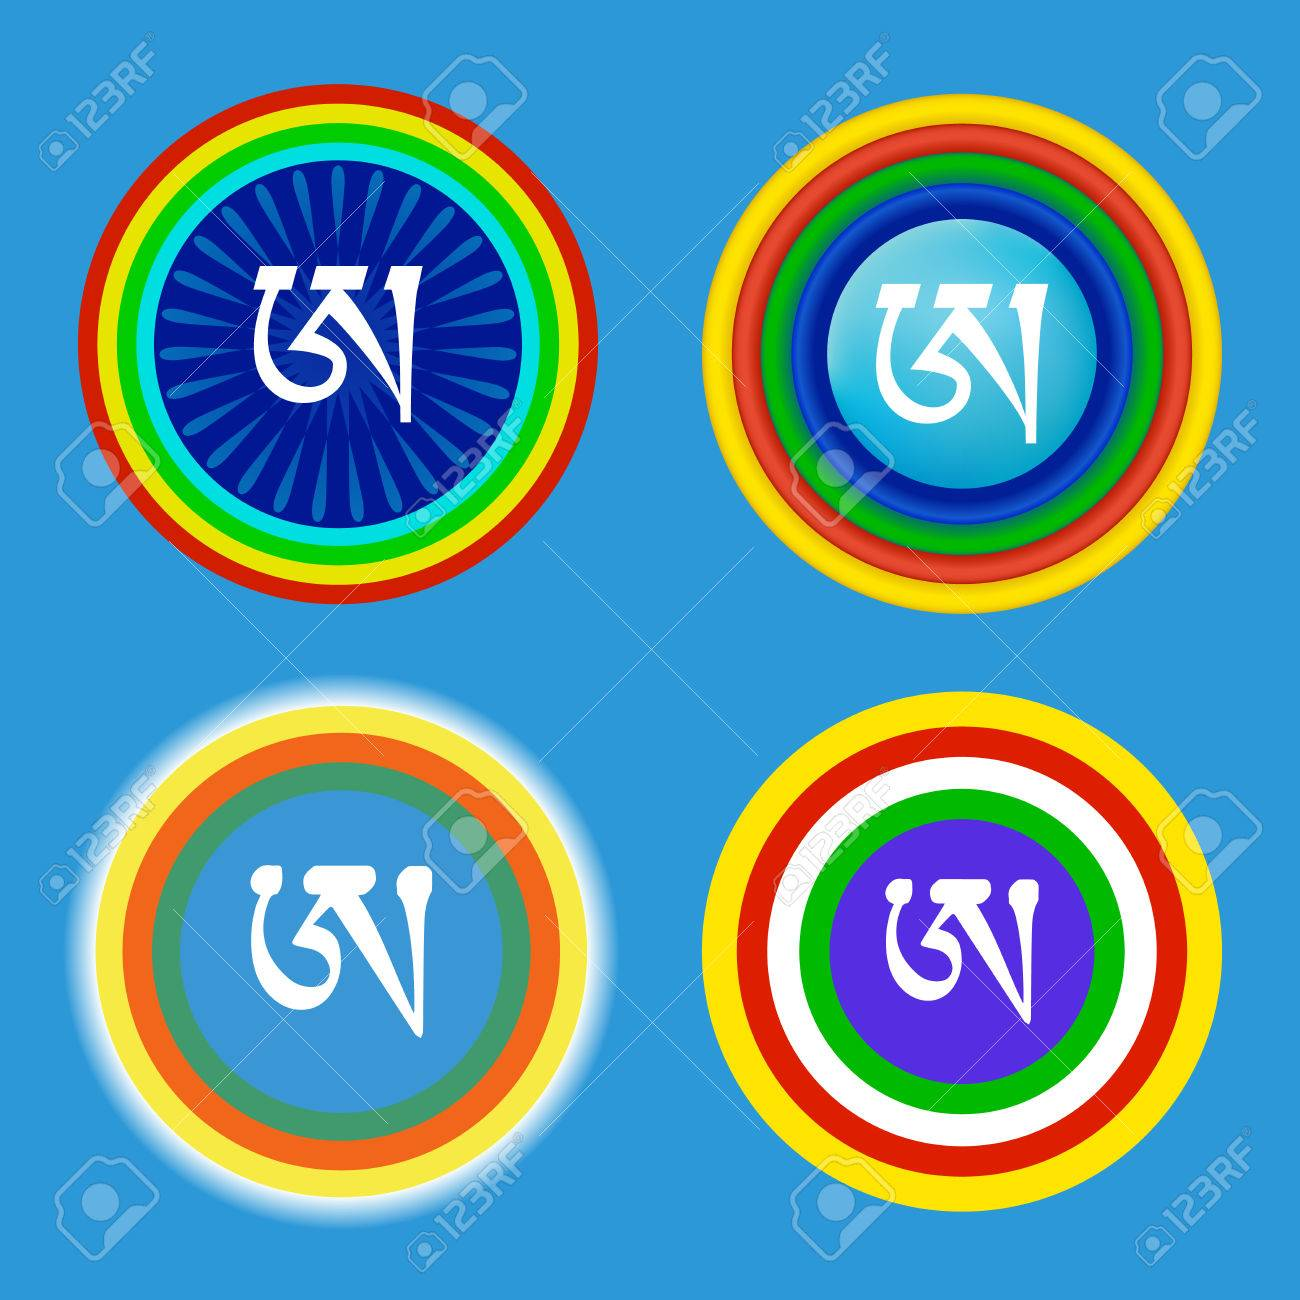 Set Of White Syllables A Tibetan Letter A Dzogchen Symbols